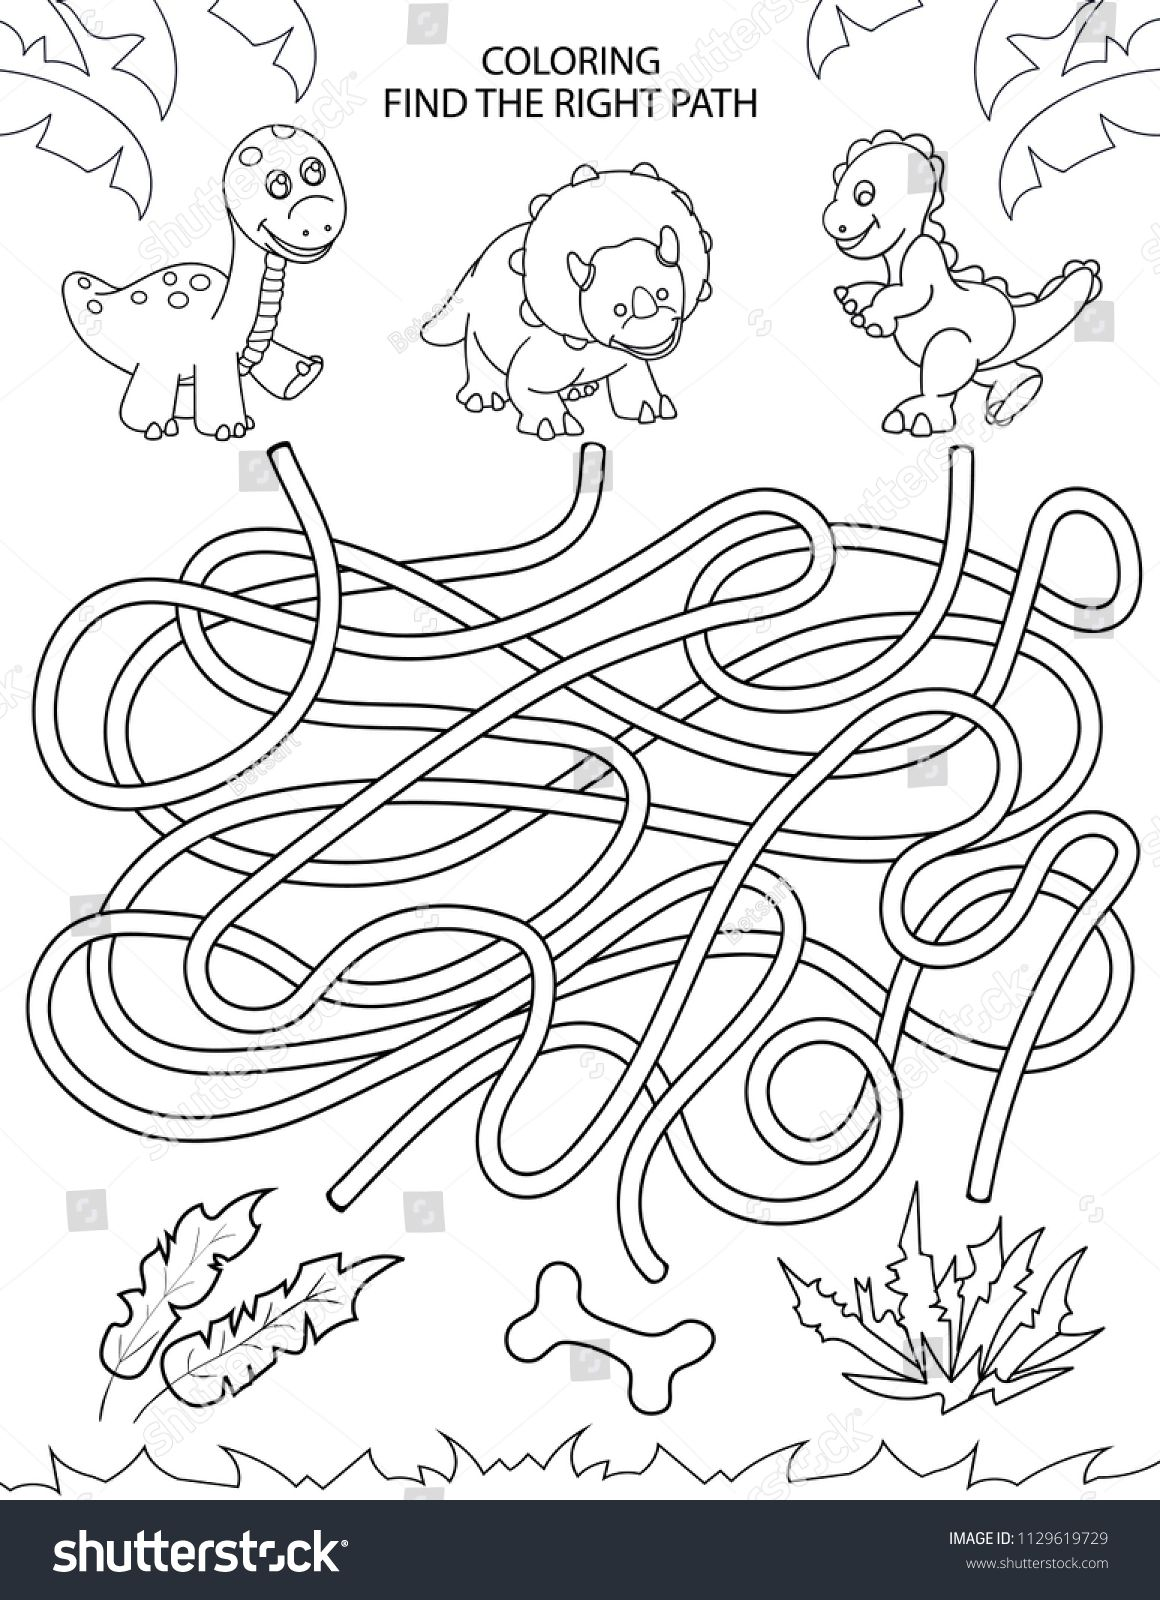 Children Maze And Coloring Kids Labyrinth Game And